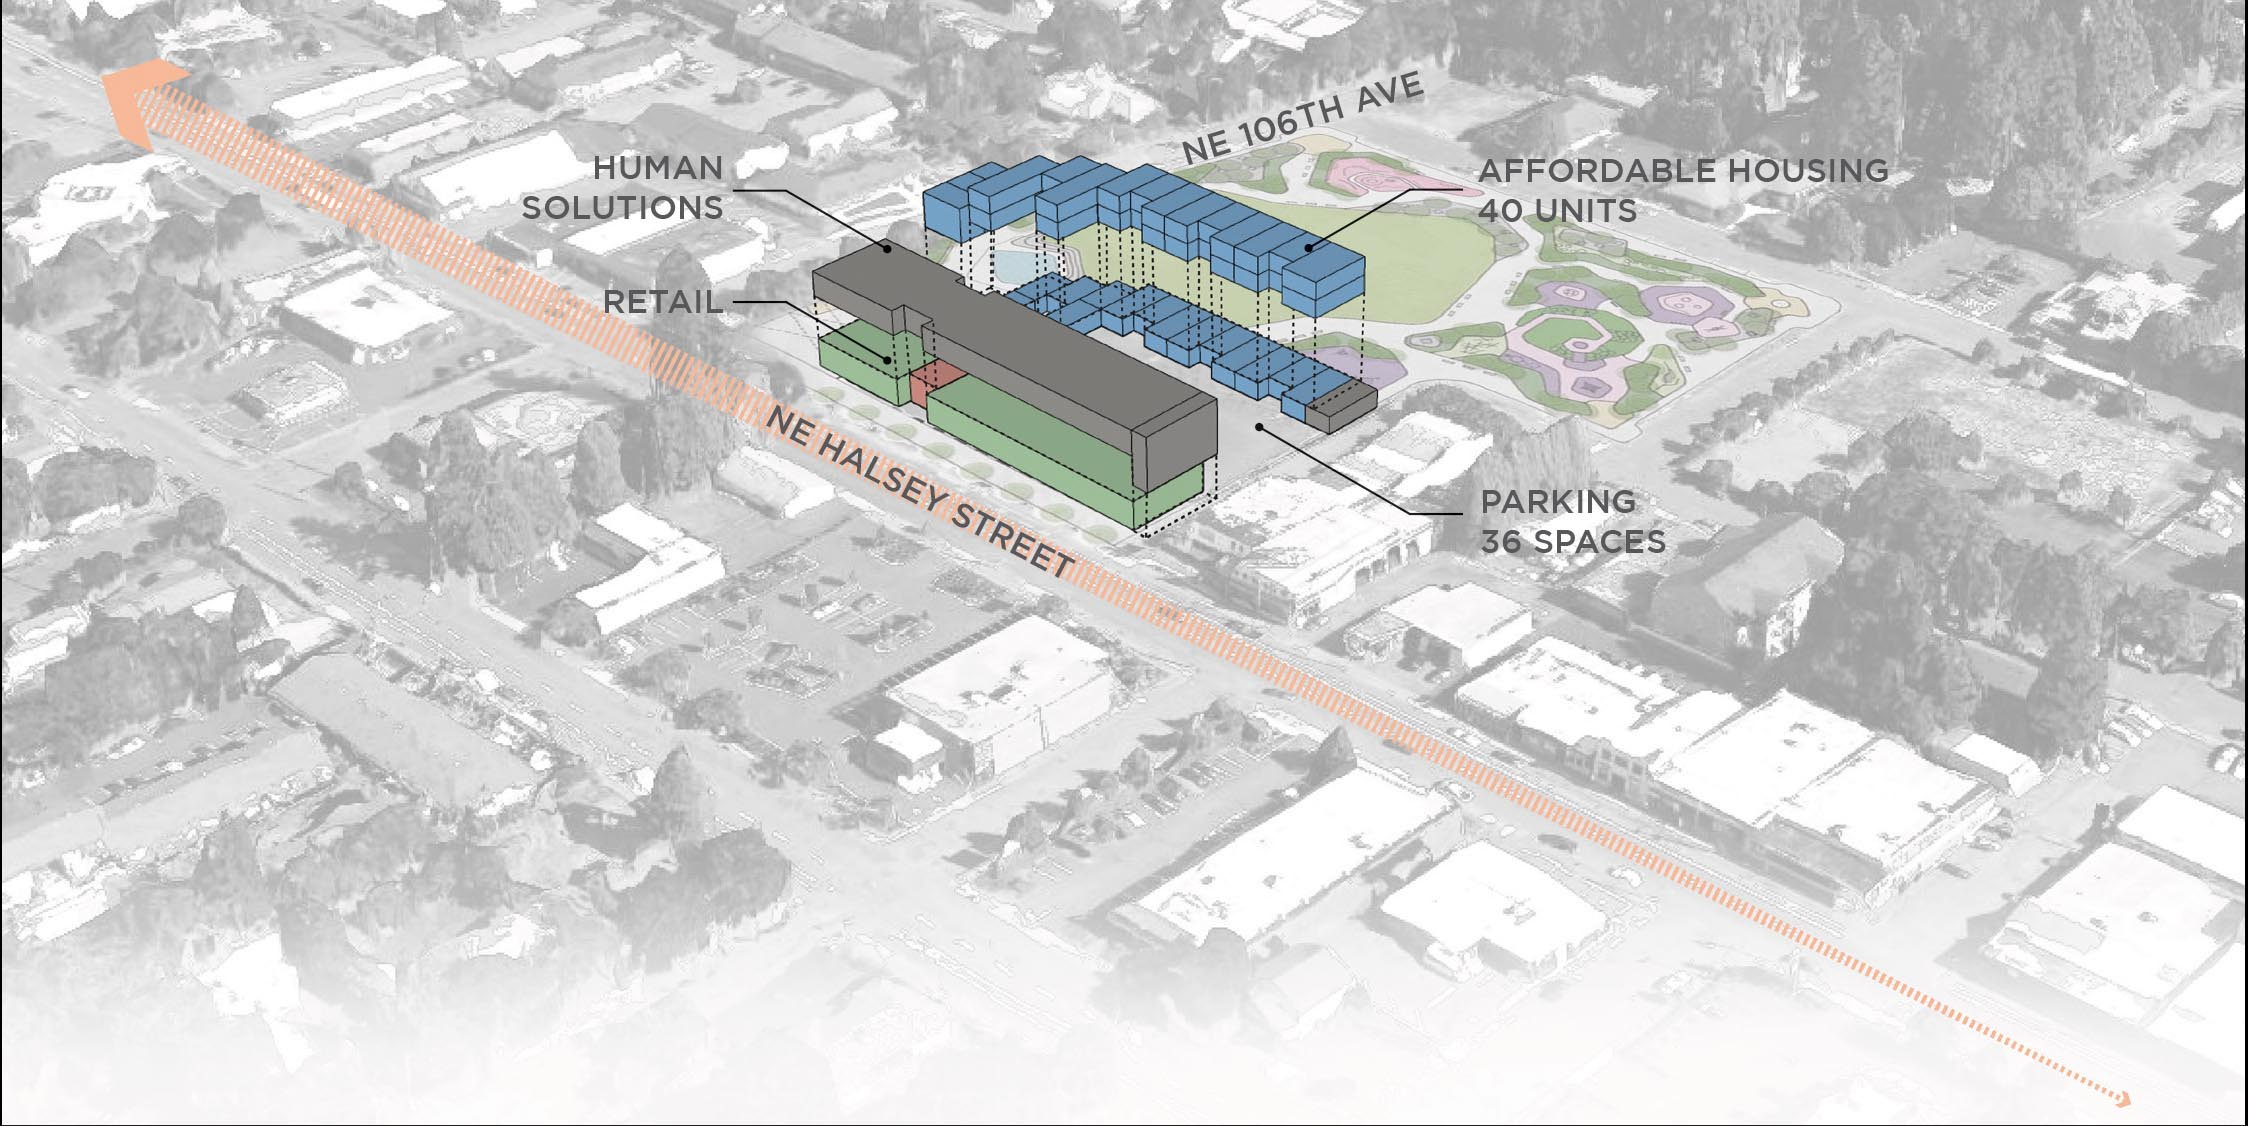 The proposed development at NE 106th & Halsey by Human Solutions, Inc.